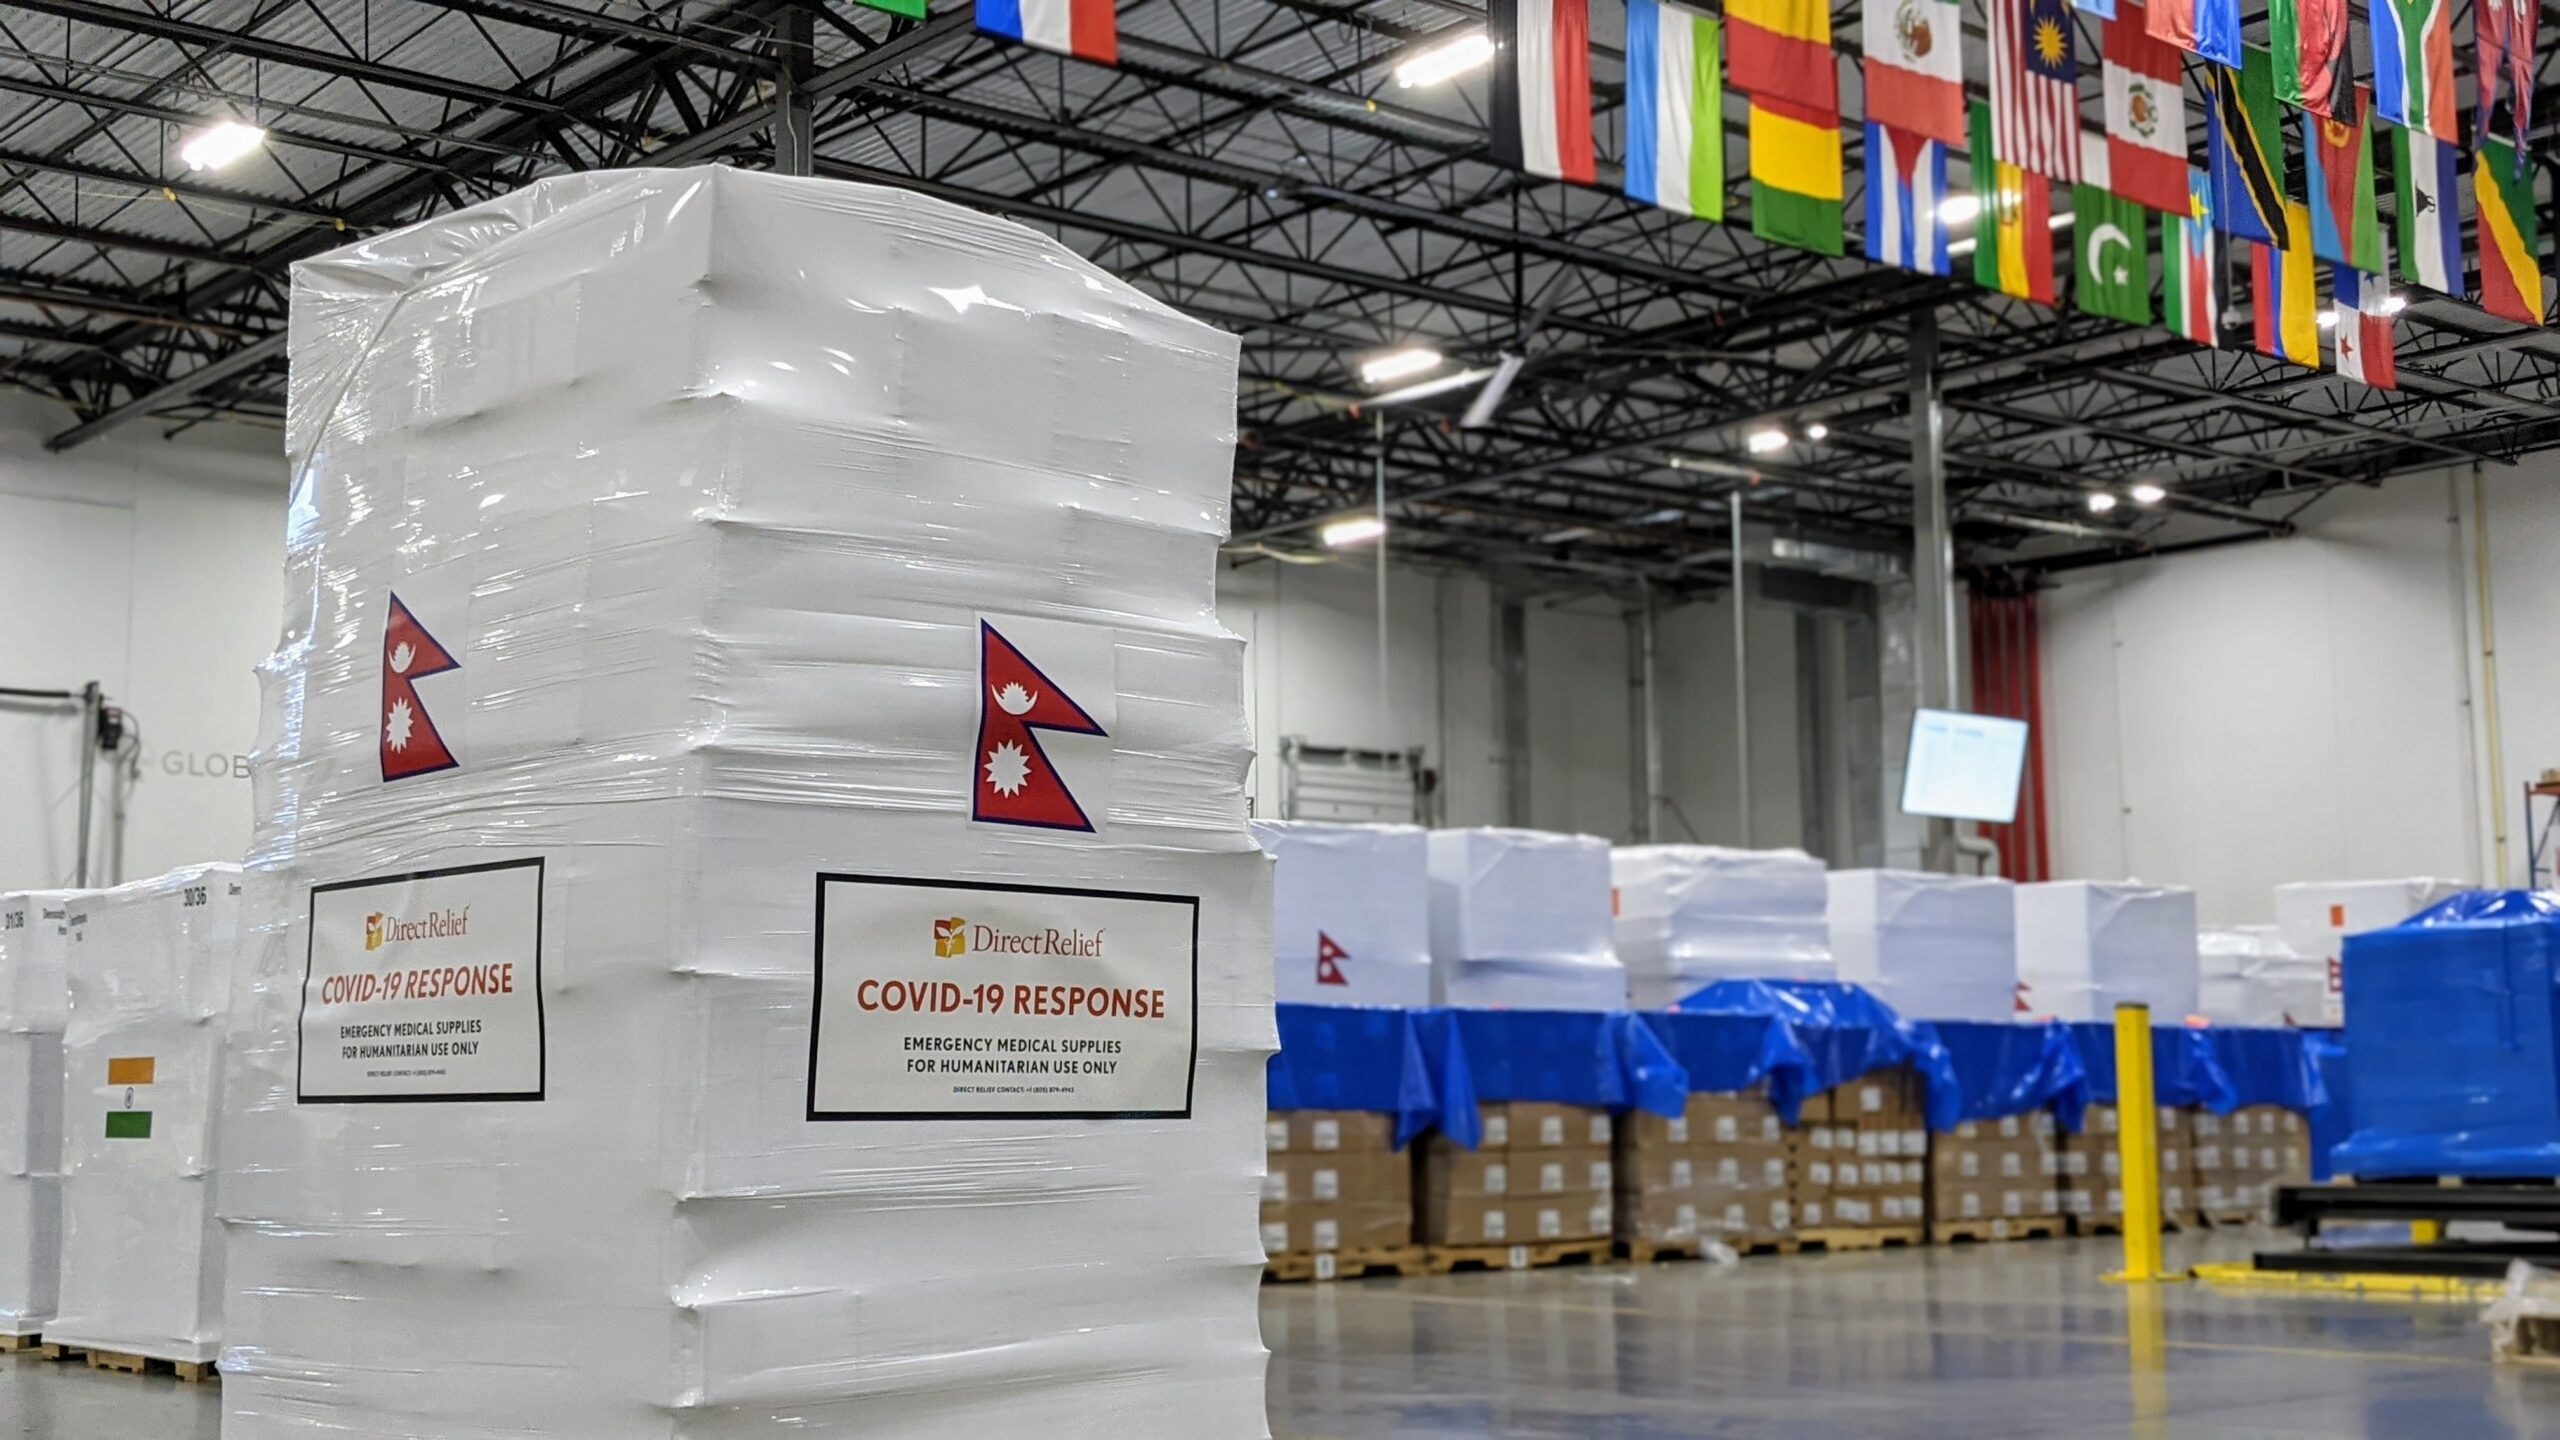 Shipments of oxygen concentrators and PPE are staged in the Direct Relief warehouse for delivery to health facilities in Nepal.  (Maeve O'Connor/Direct Relief)